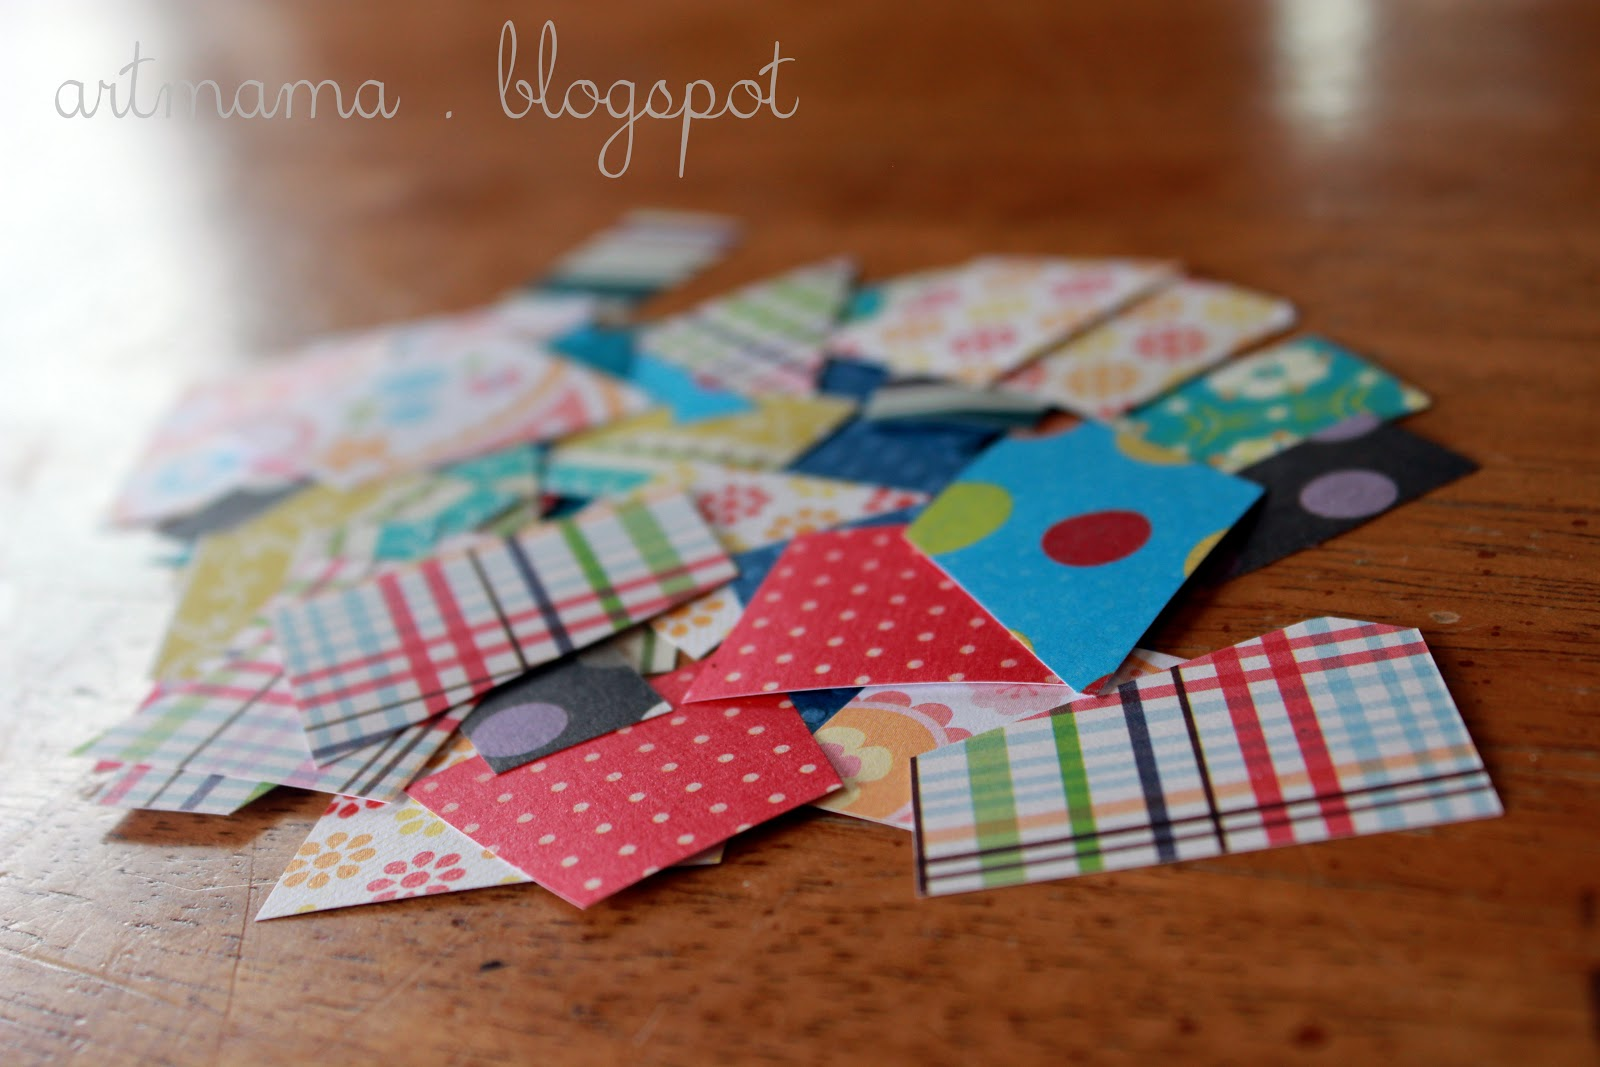 The Art Of Being Mama Calico Cat Paper Craft